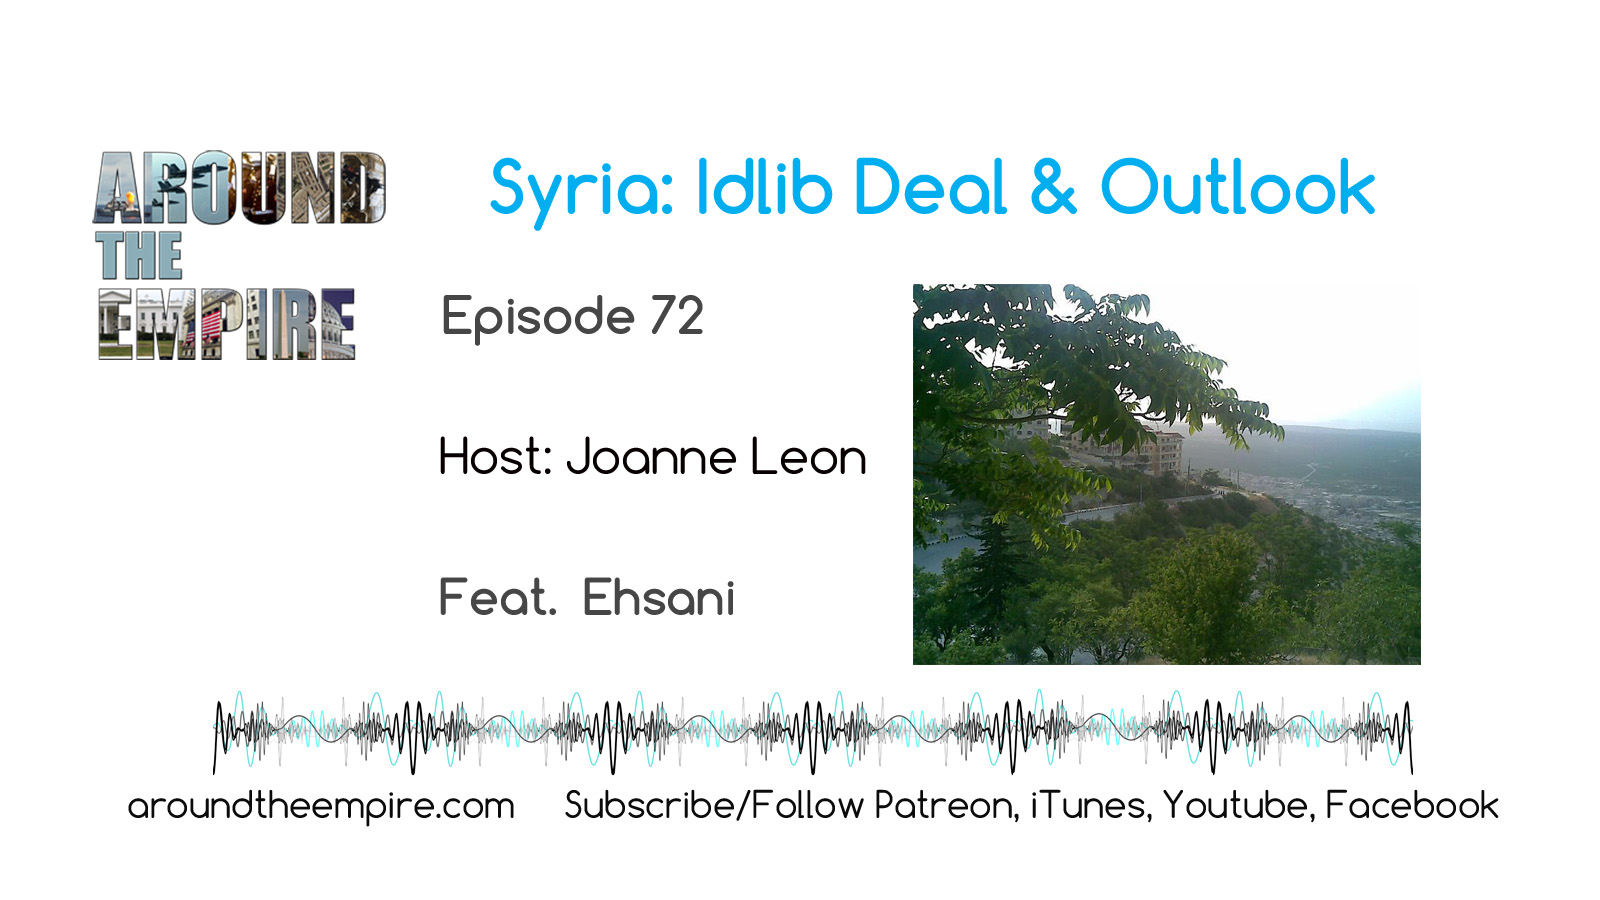 Ep 72 Syria: Idlib Deal and Outlook feat Ehsani